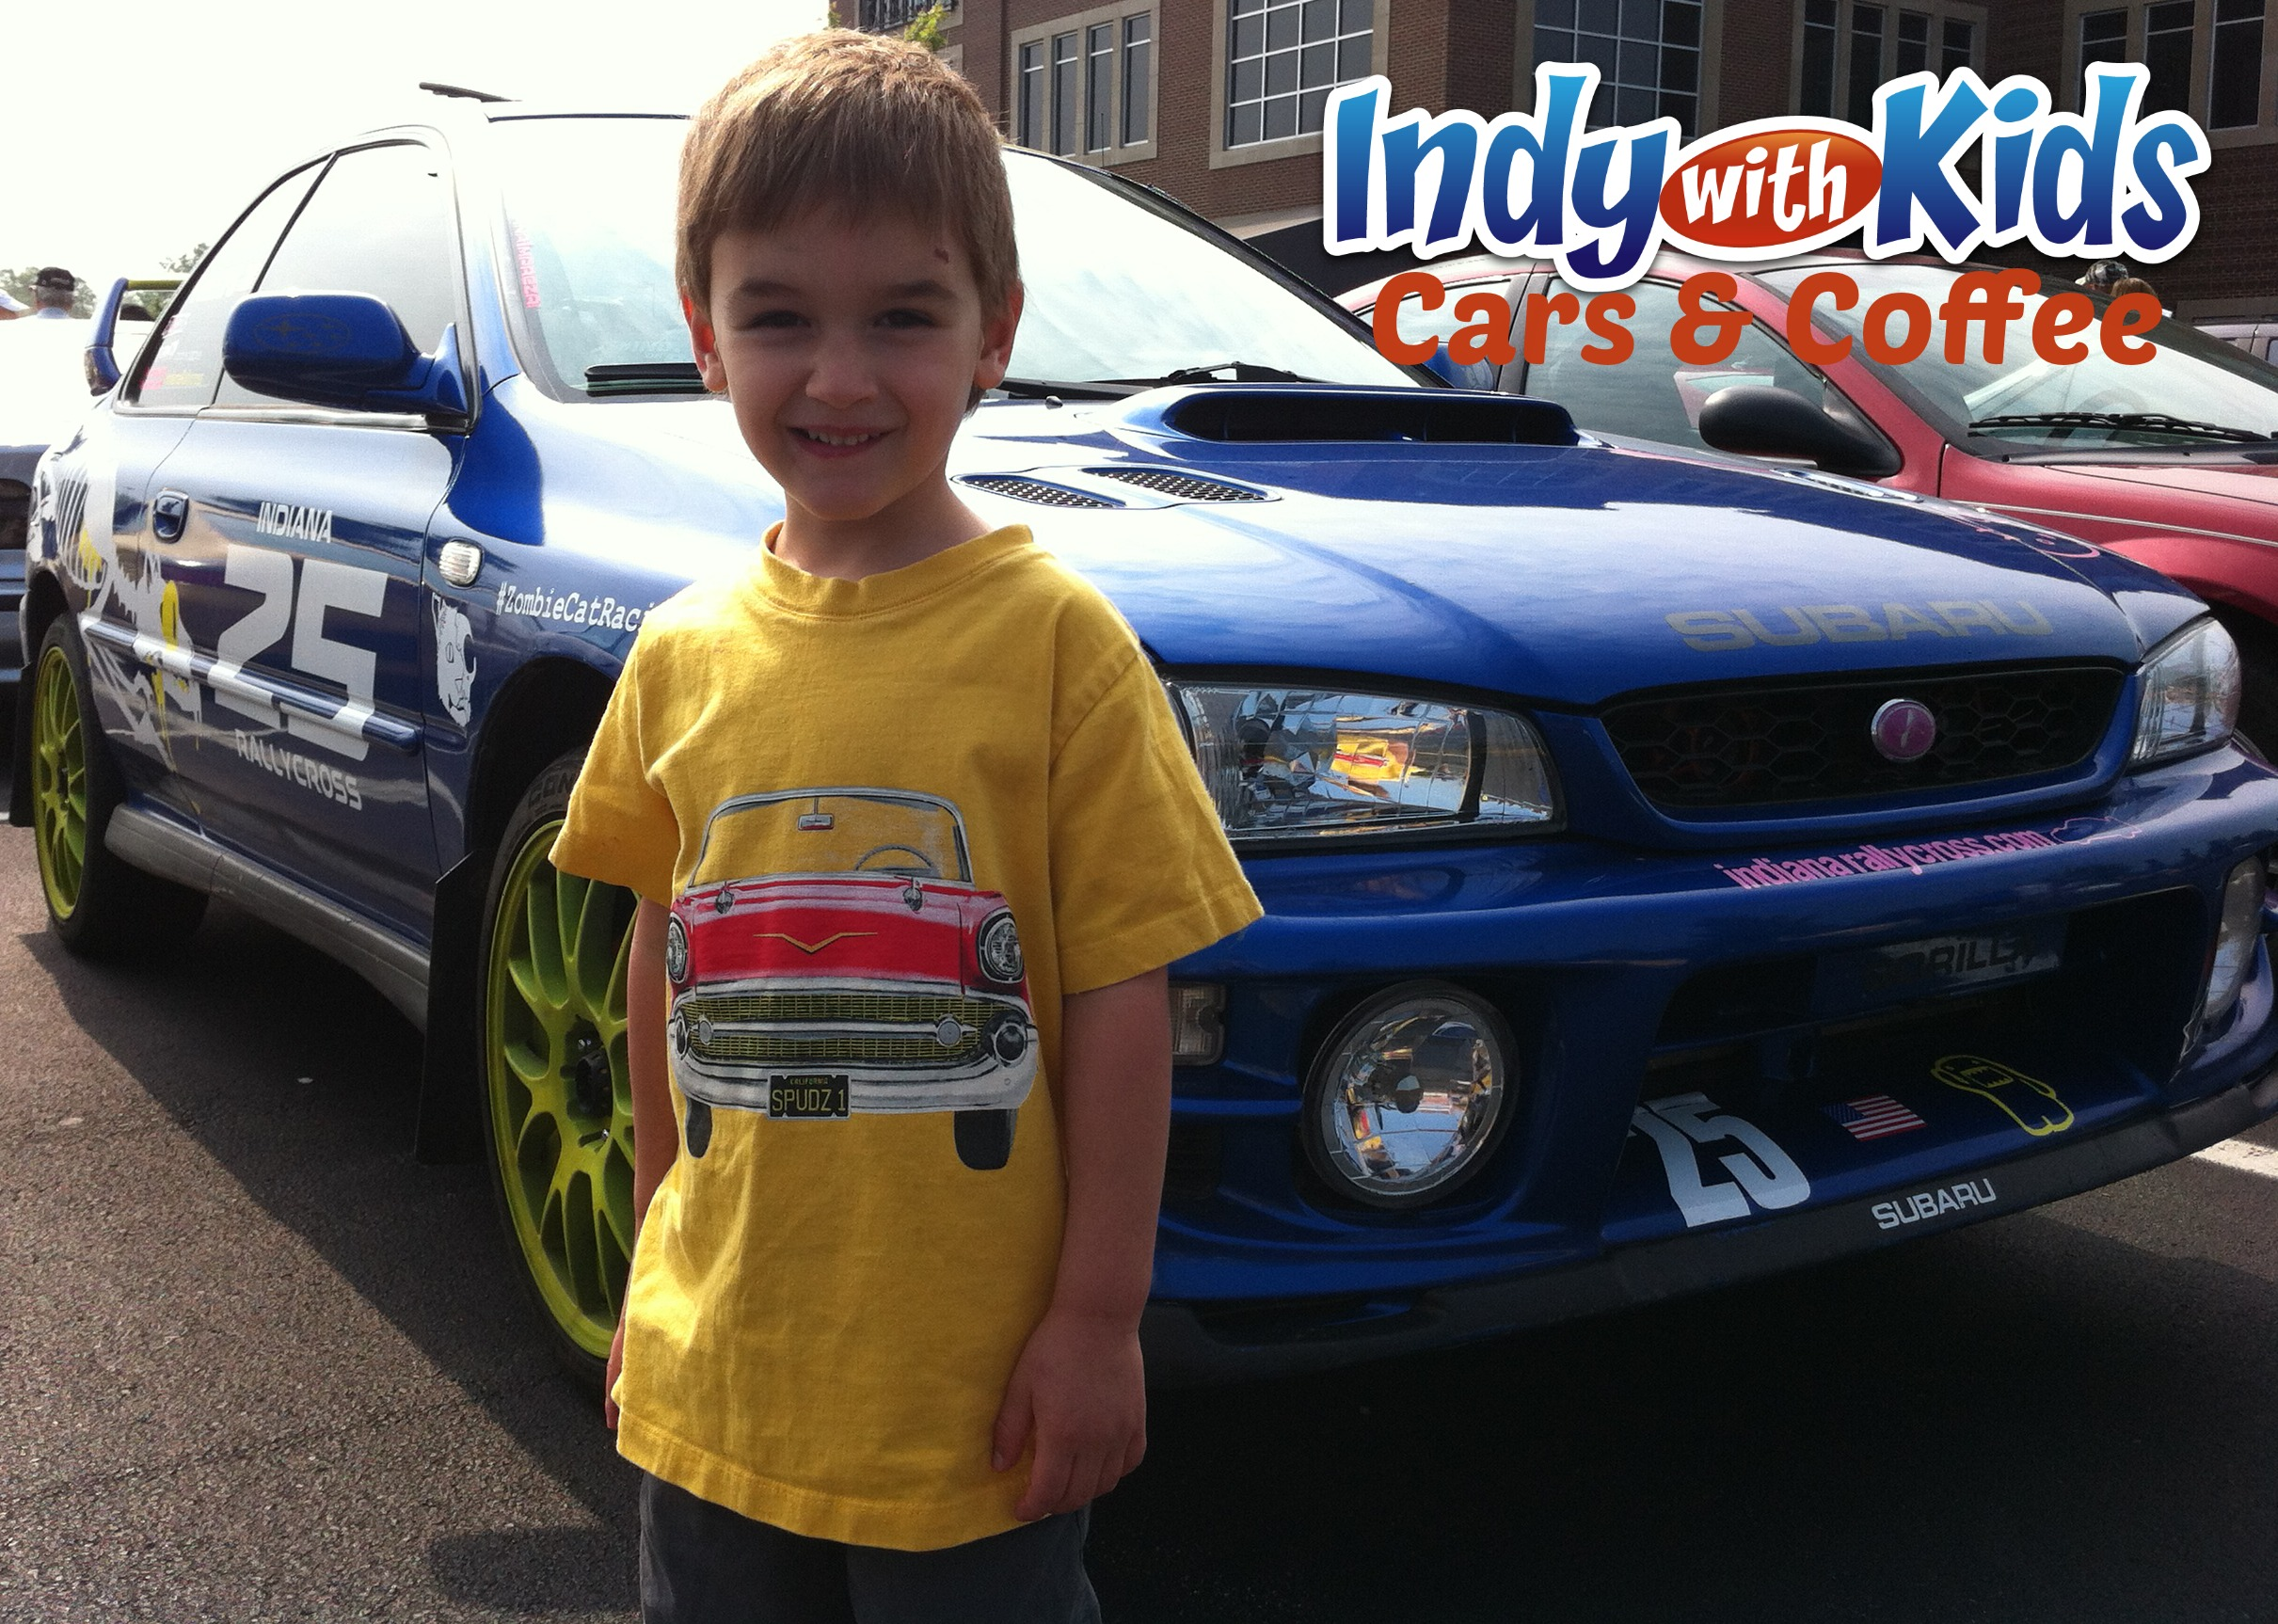 Cars and Coffee – Saturdays in Indianapolis